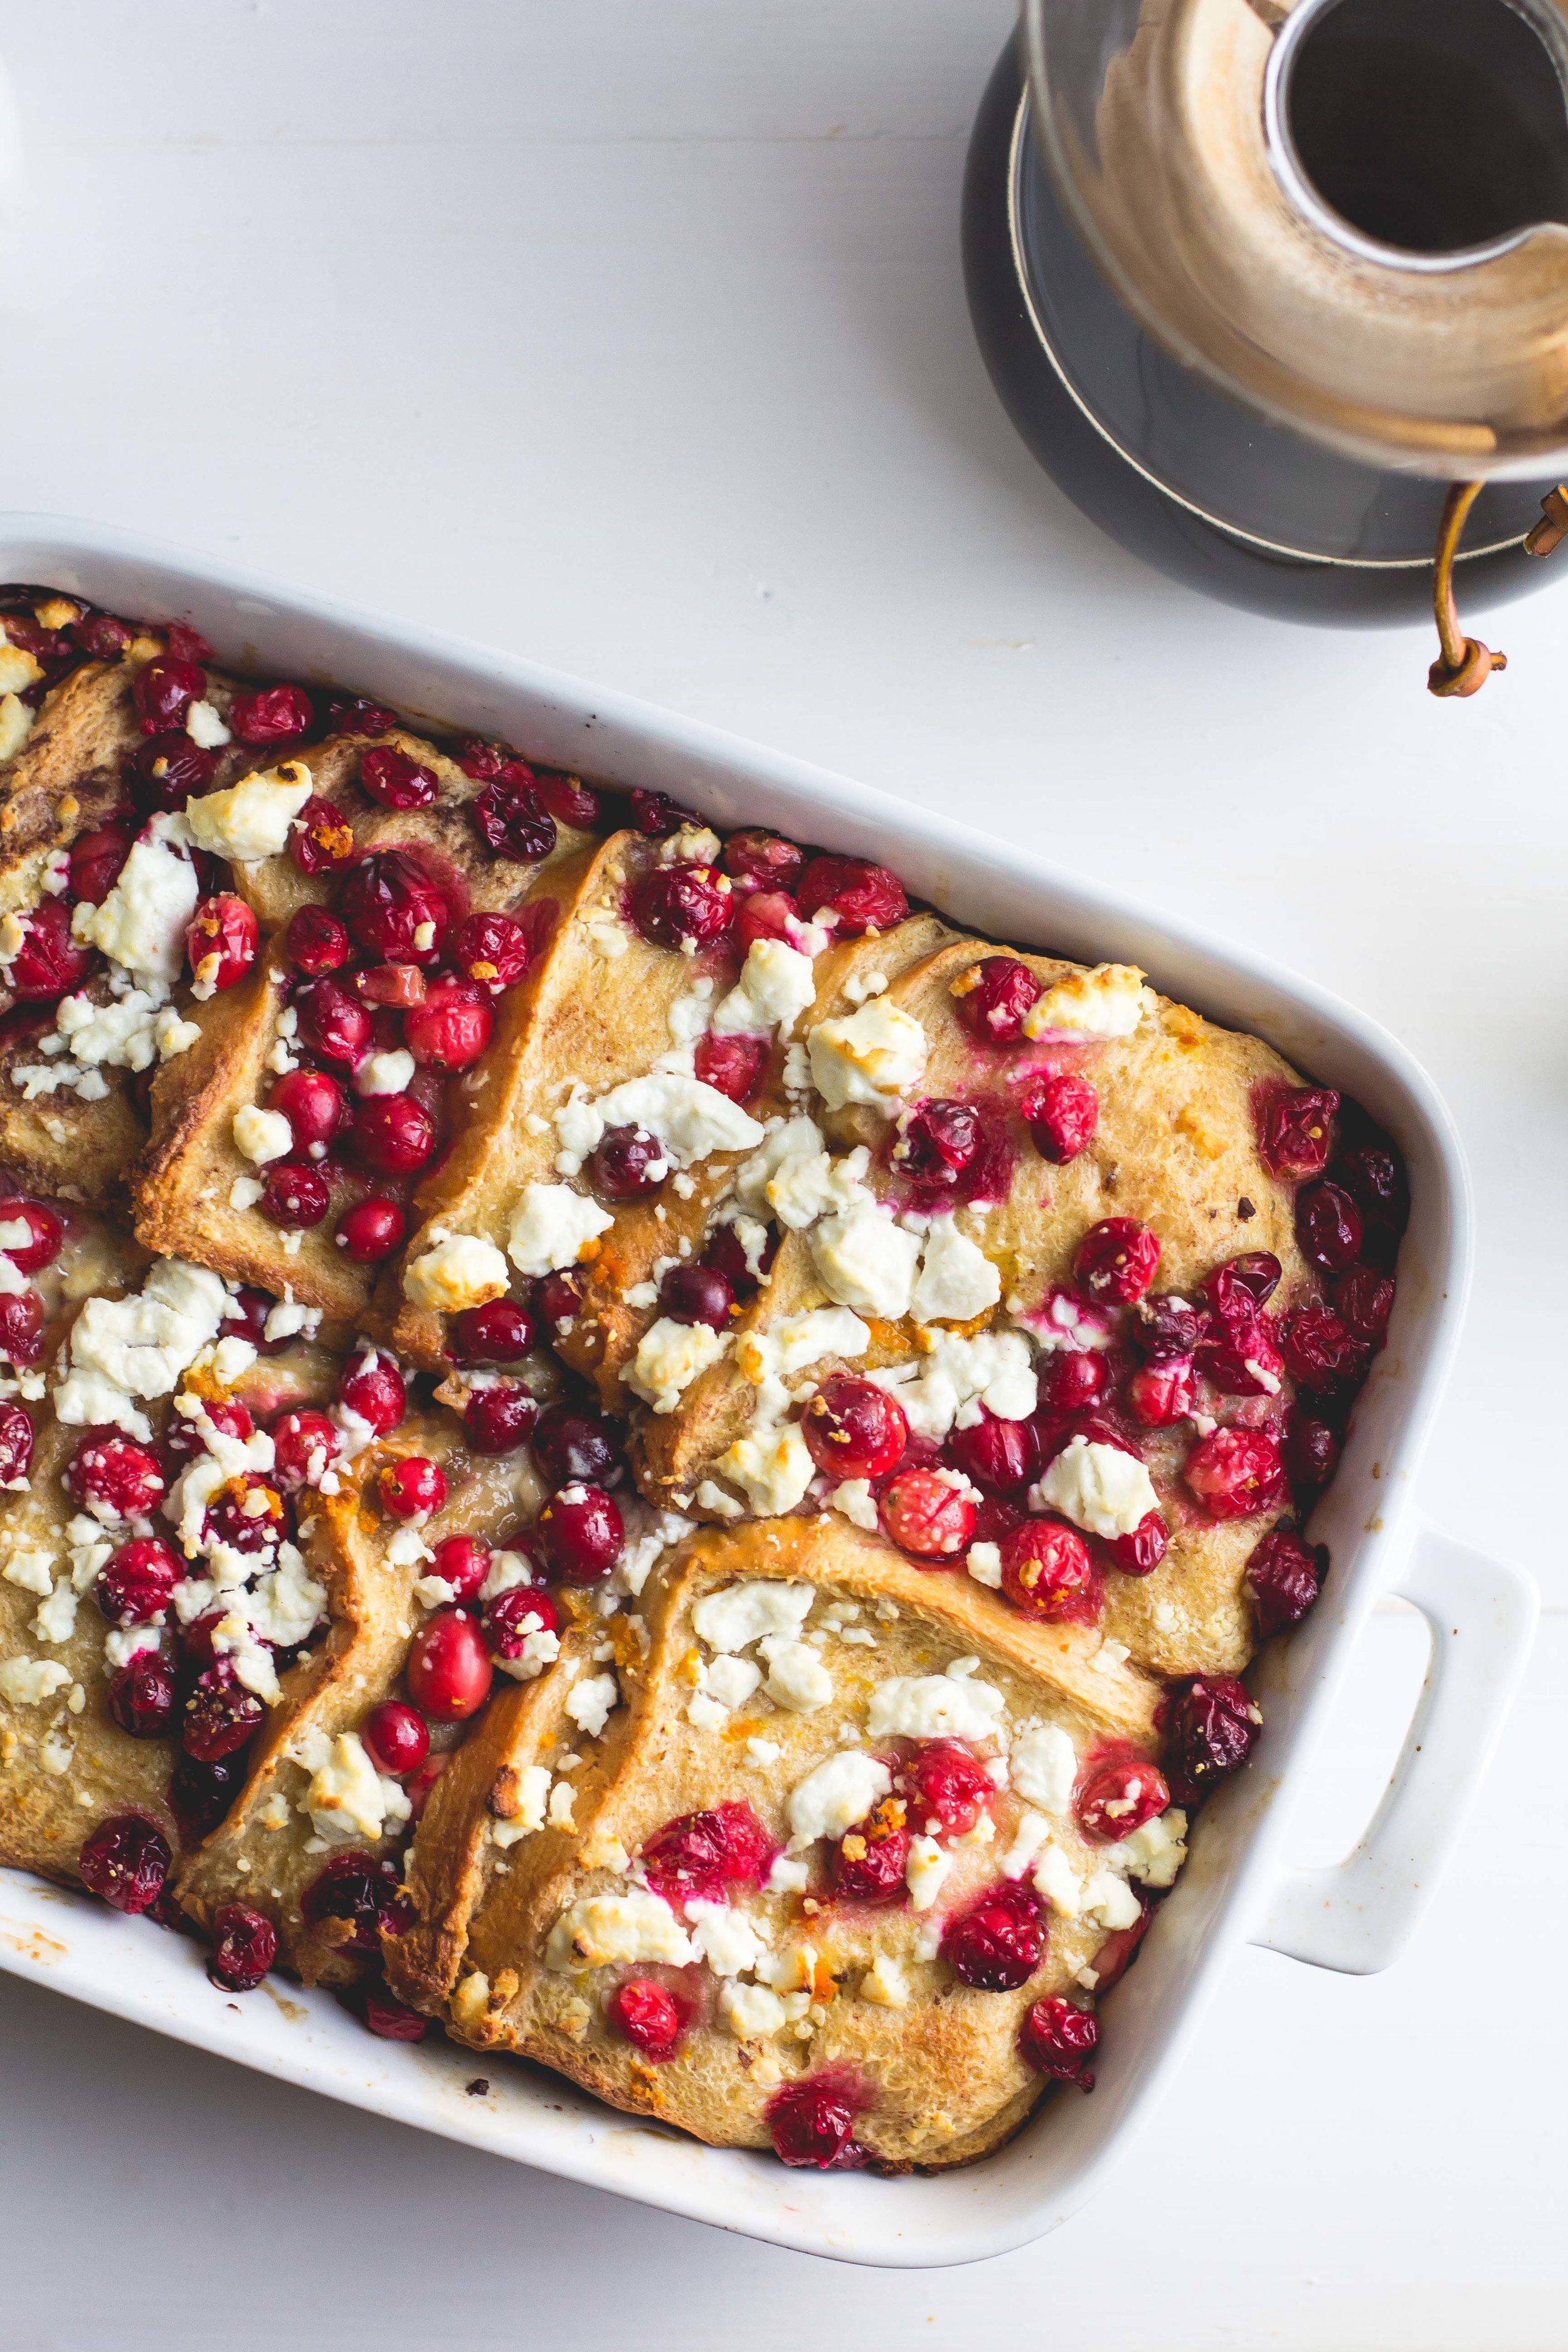 Cranberry + Goat Cheese Baked French Toast